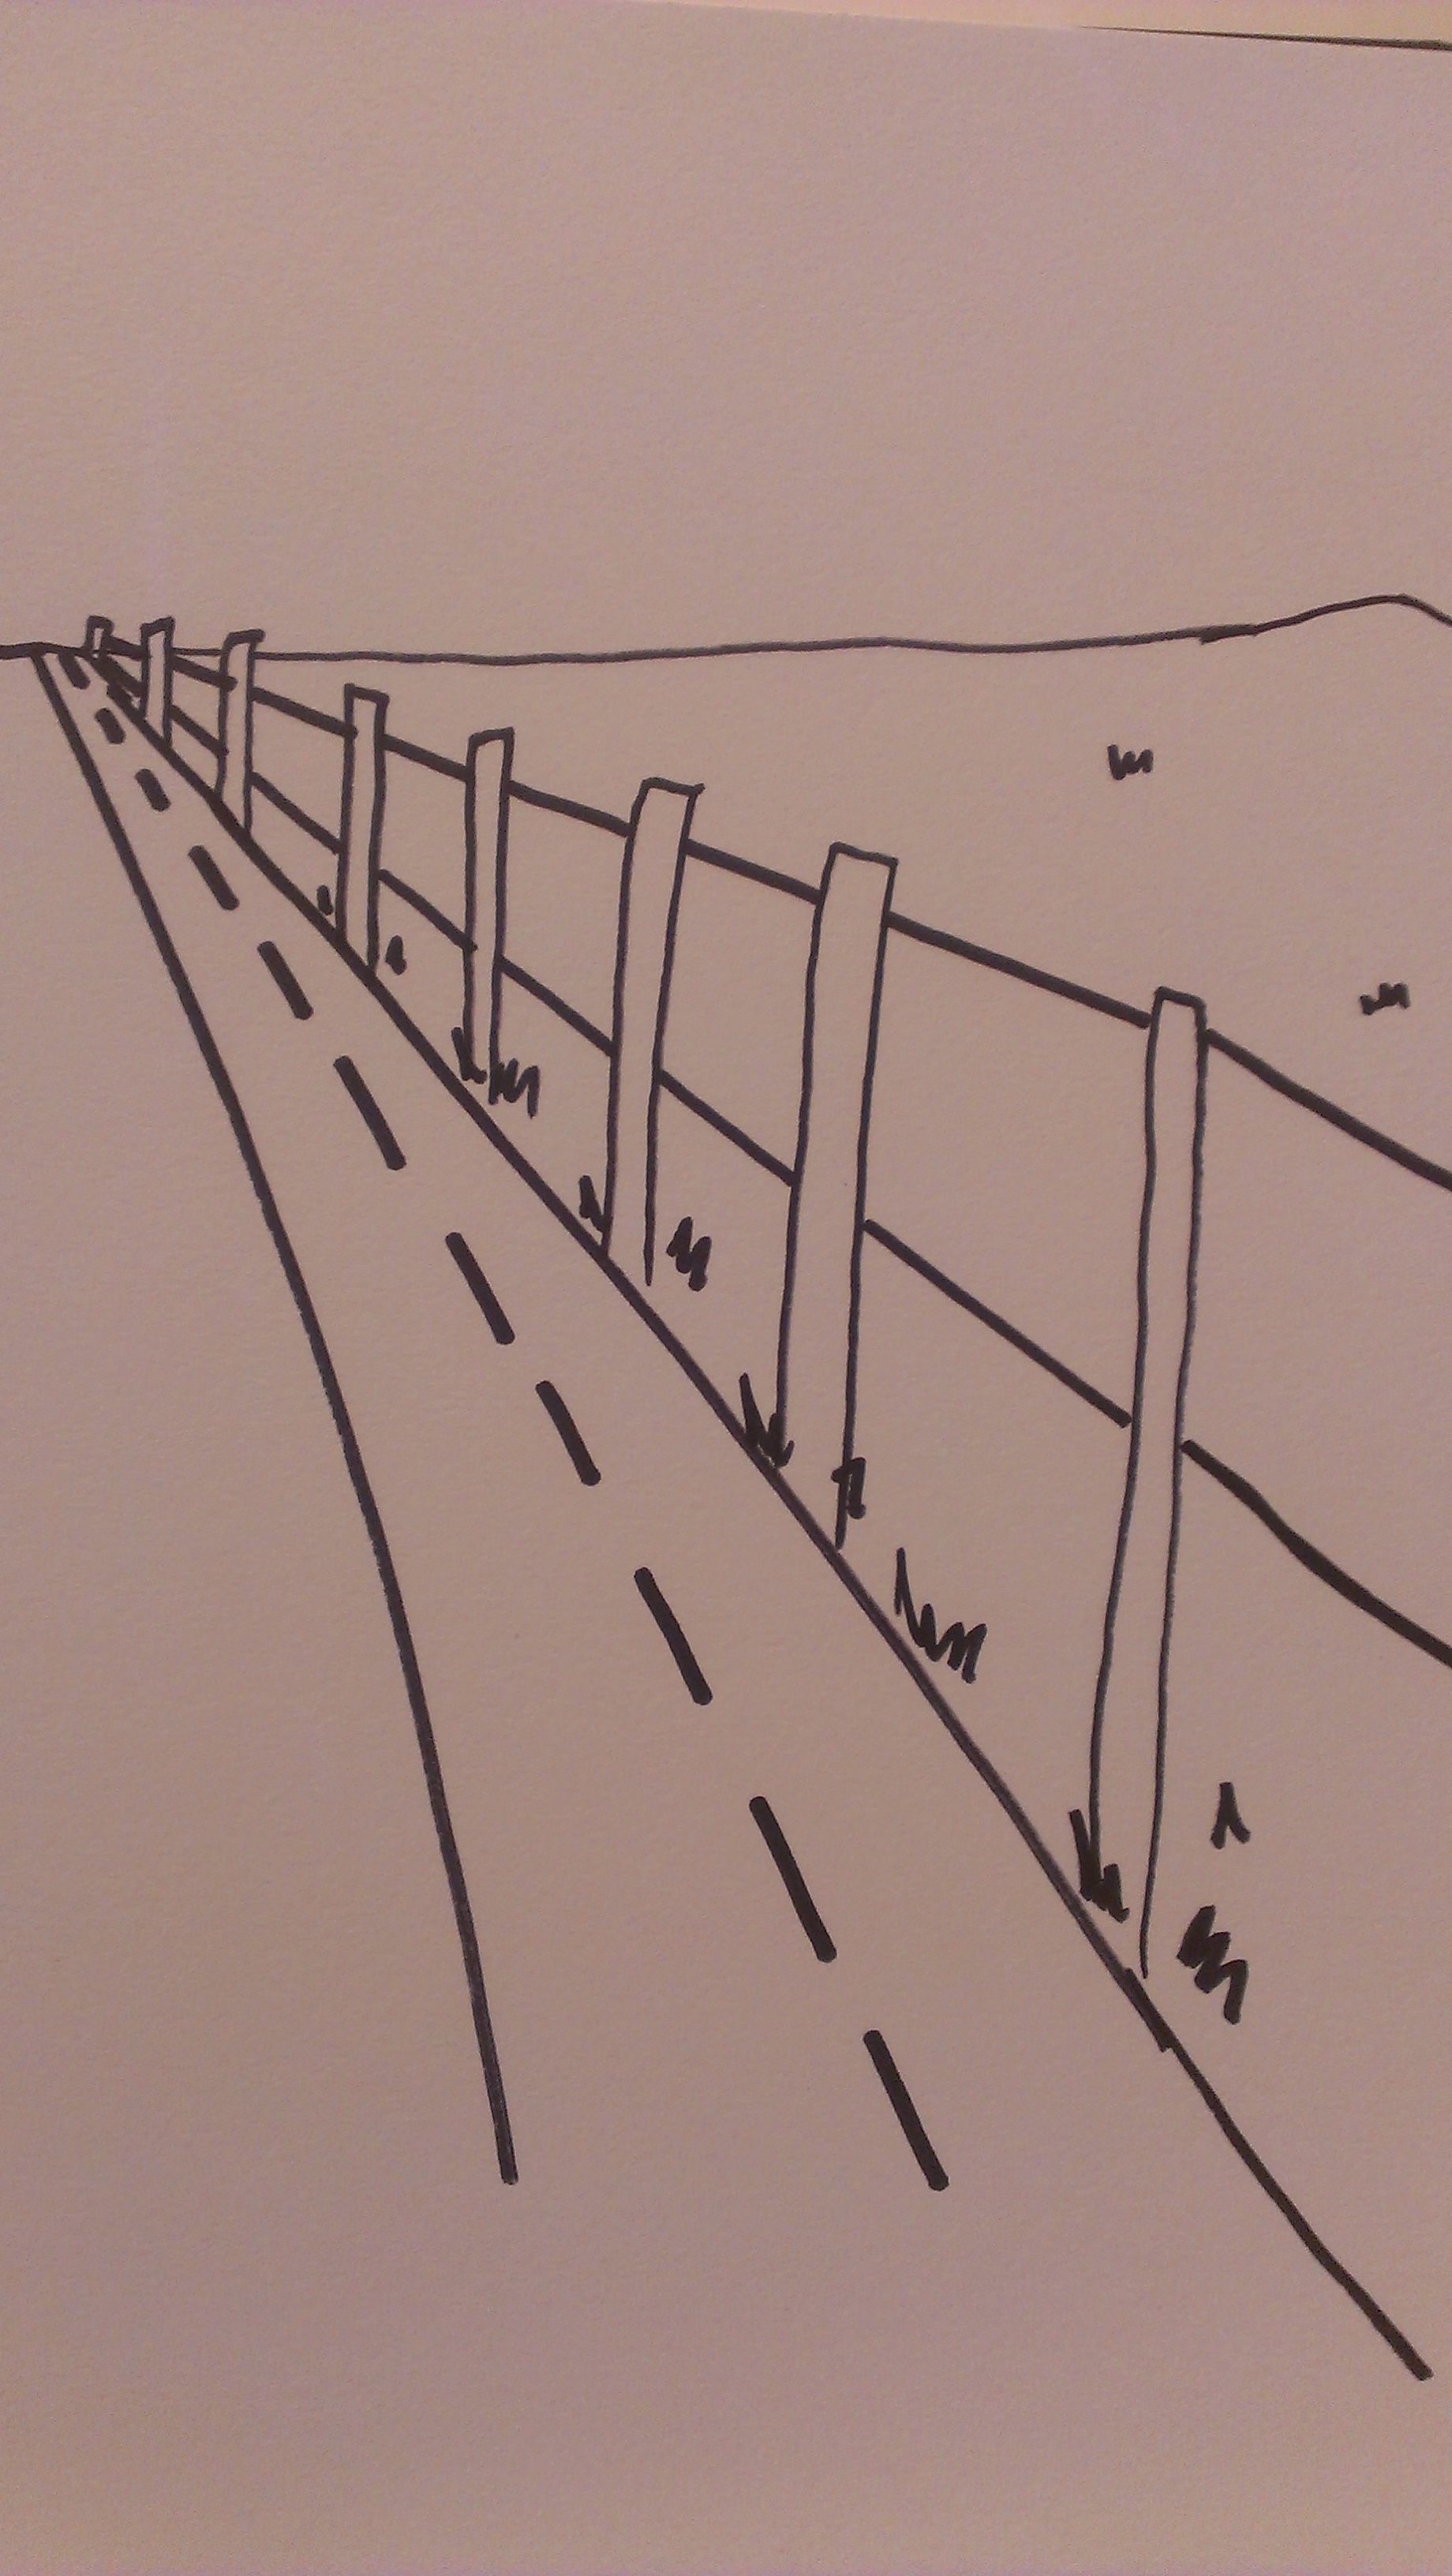 Drawn roadway perspective drawing In School Space perspective Beginner's